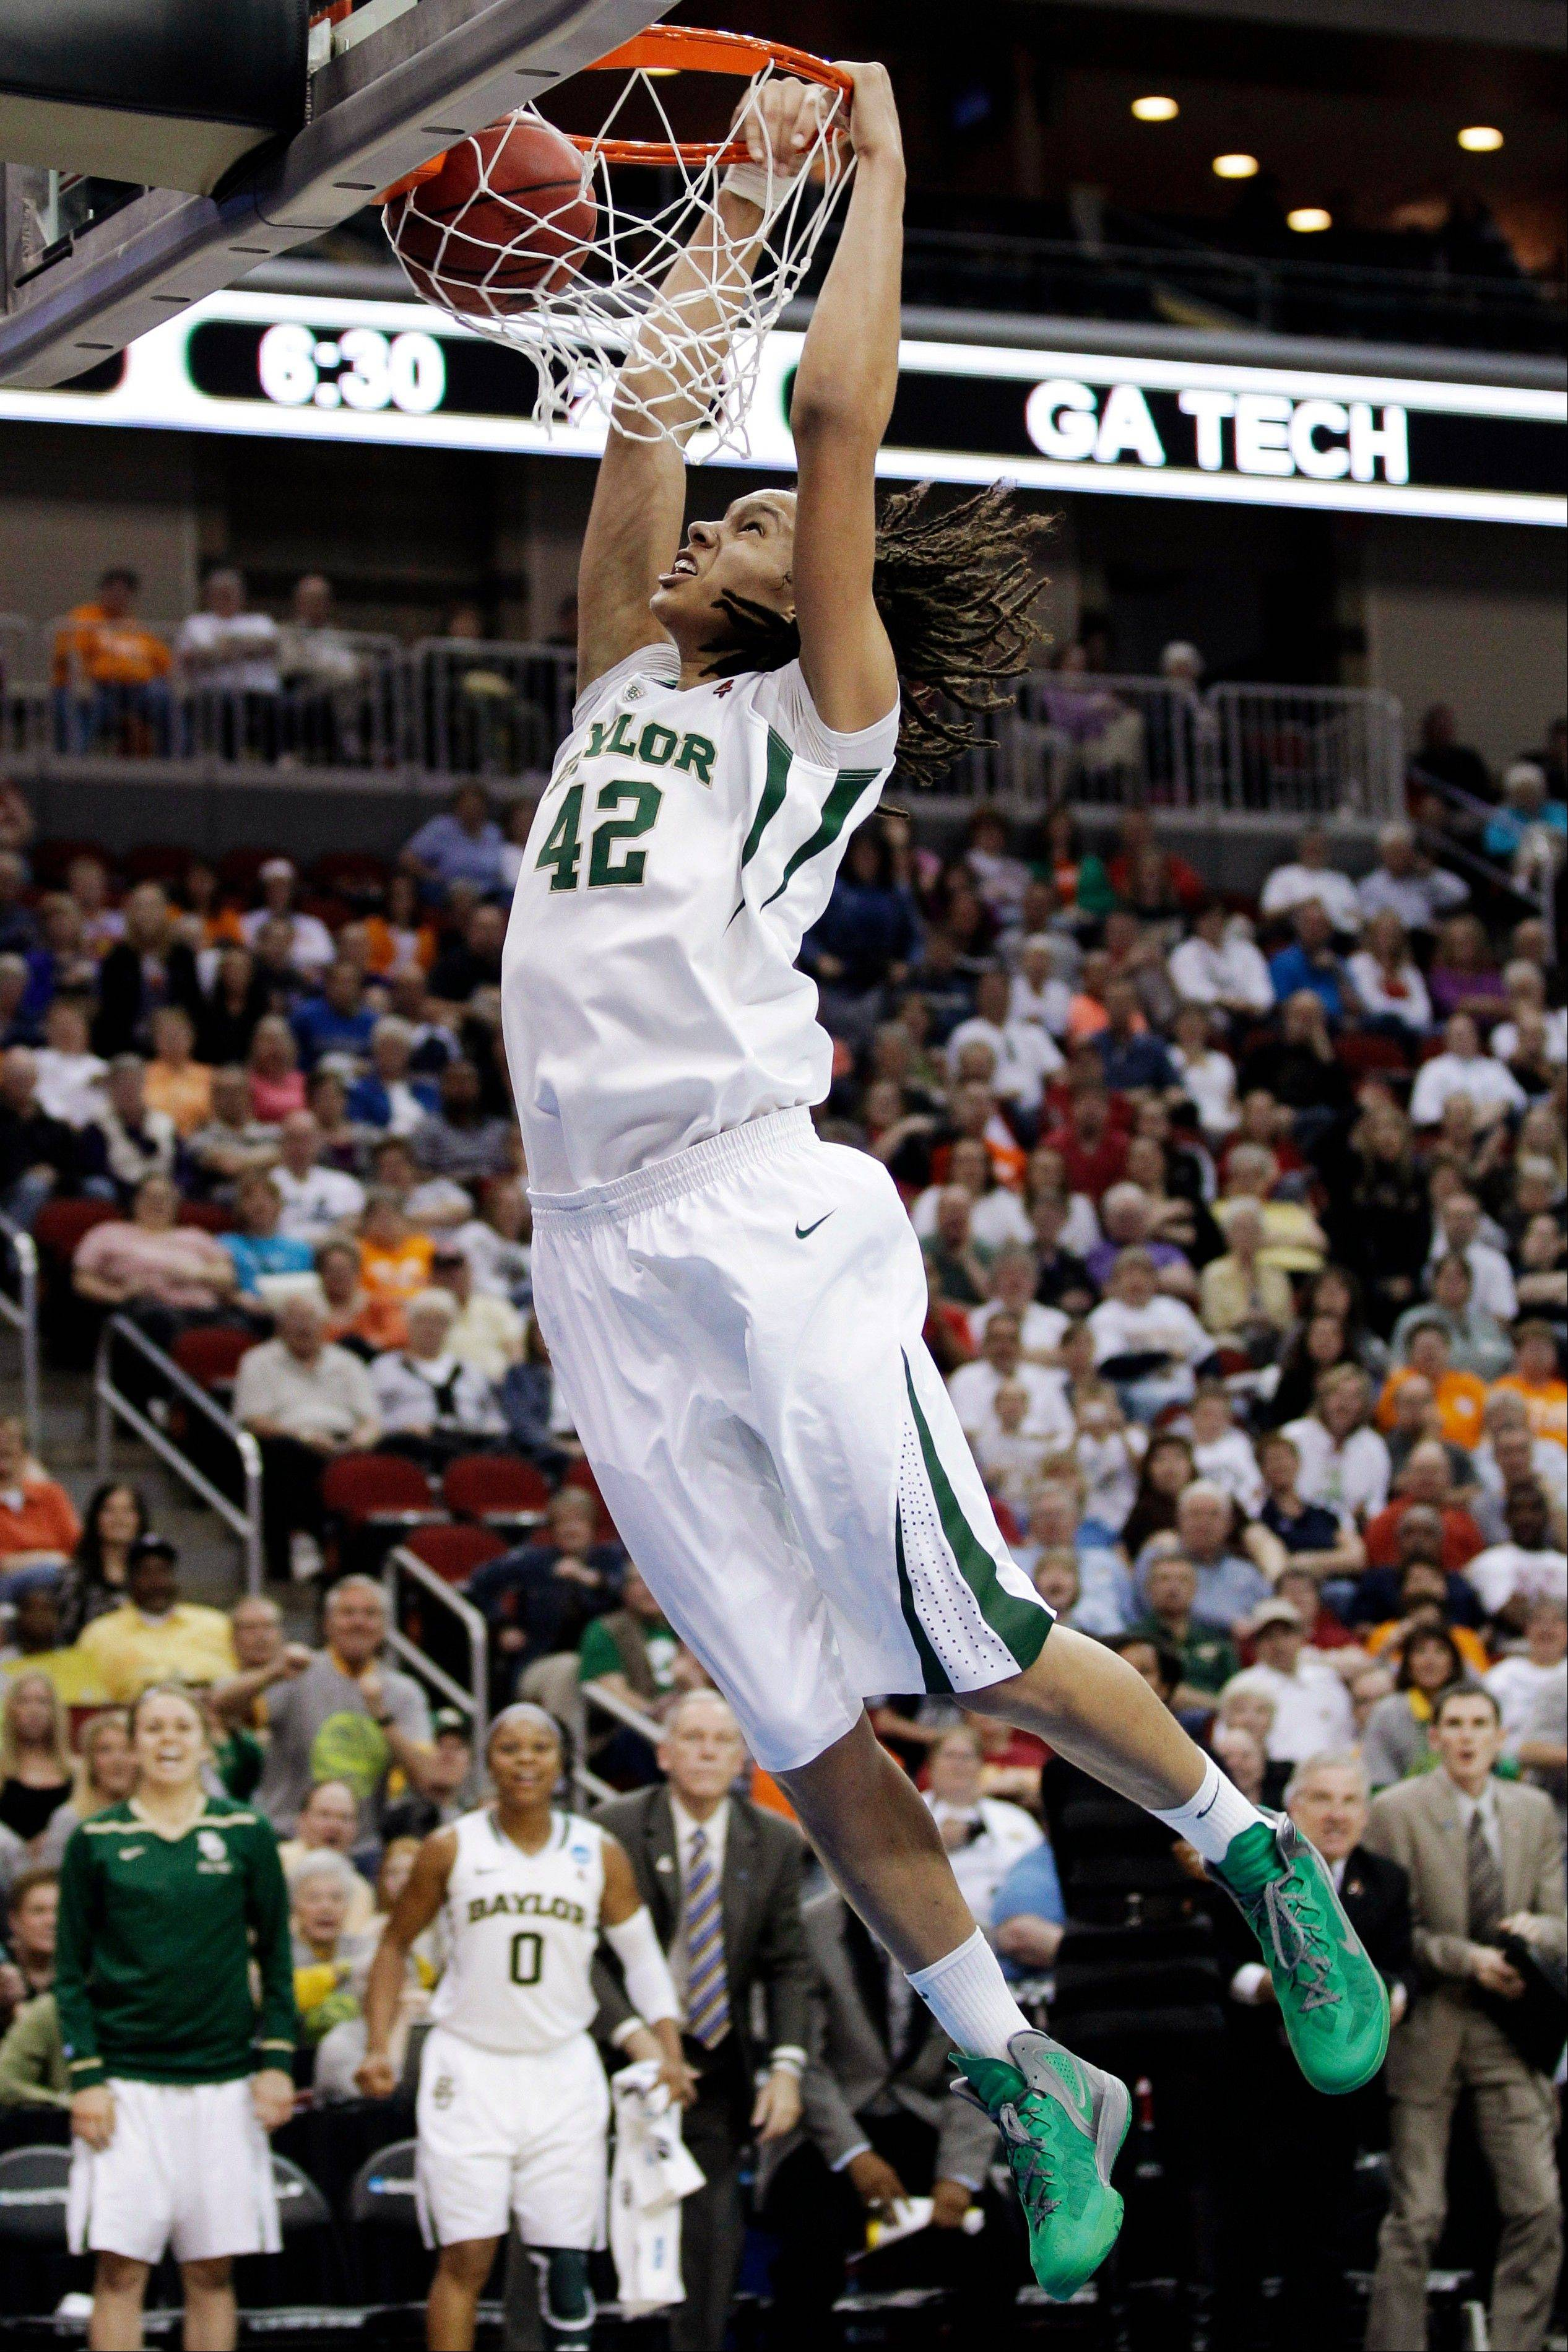 Baylor center Brittney Griner became only the third player to be a two-time unanimous choice on The Associated Press� women�s basketball preseason All-America team, receiving all 40 votes from a national media panel.